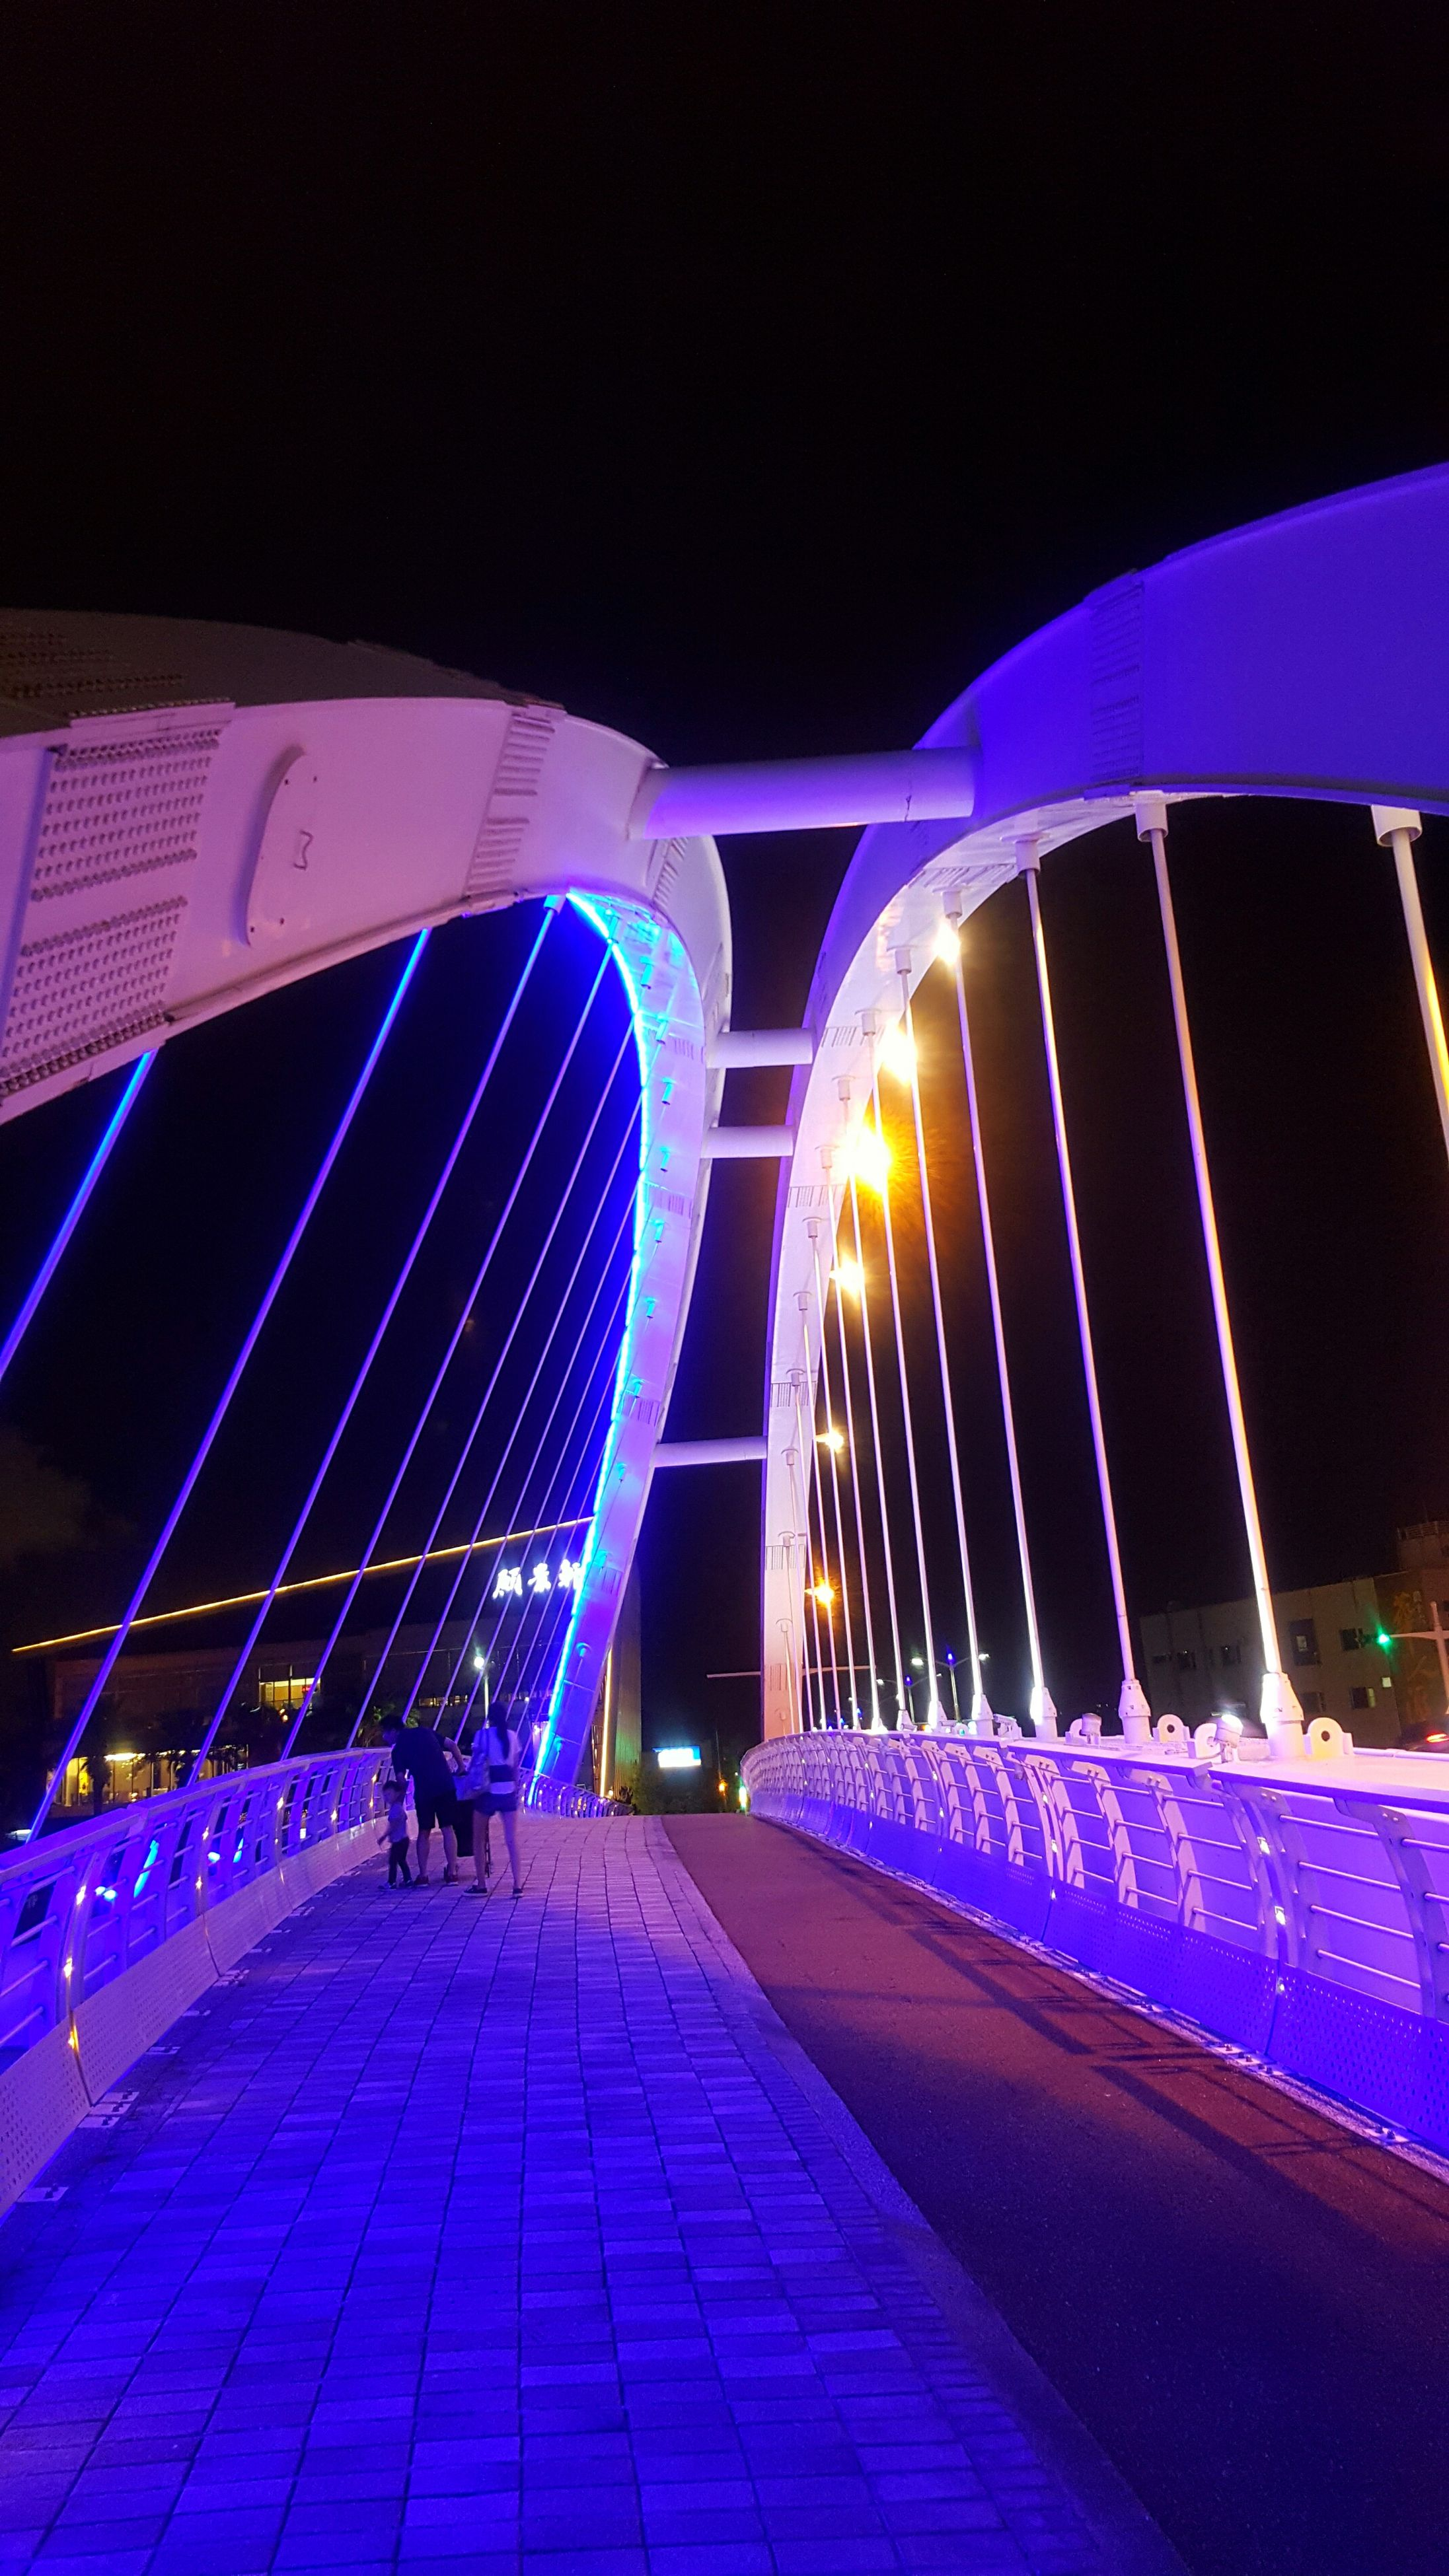 night, illuminated, real people, connection, the way forward, transportation, bridge - man made structure, modern, blue, architecture, built structure, men, outdoors